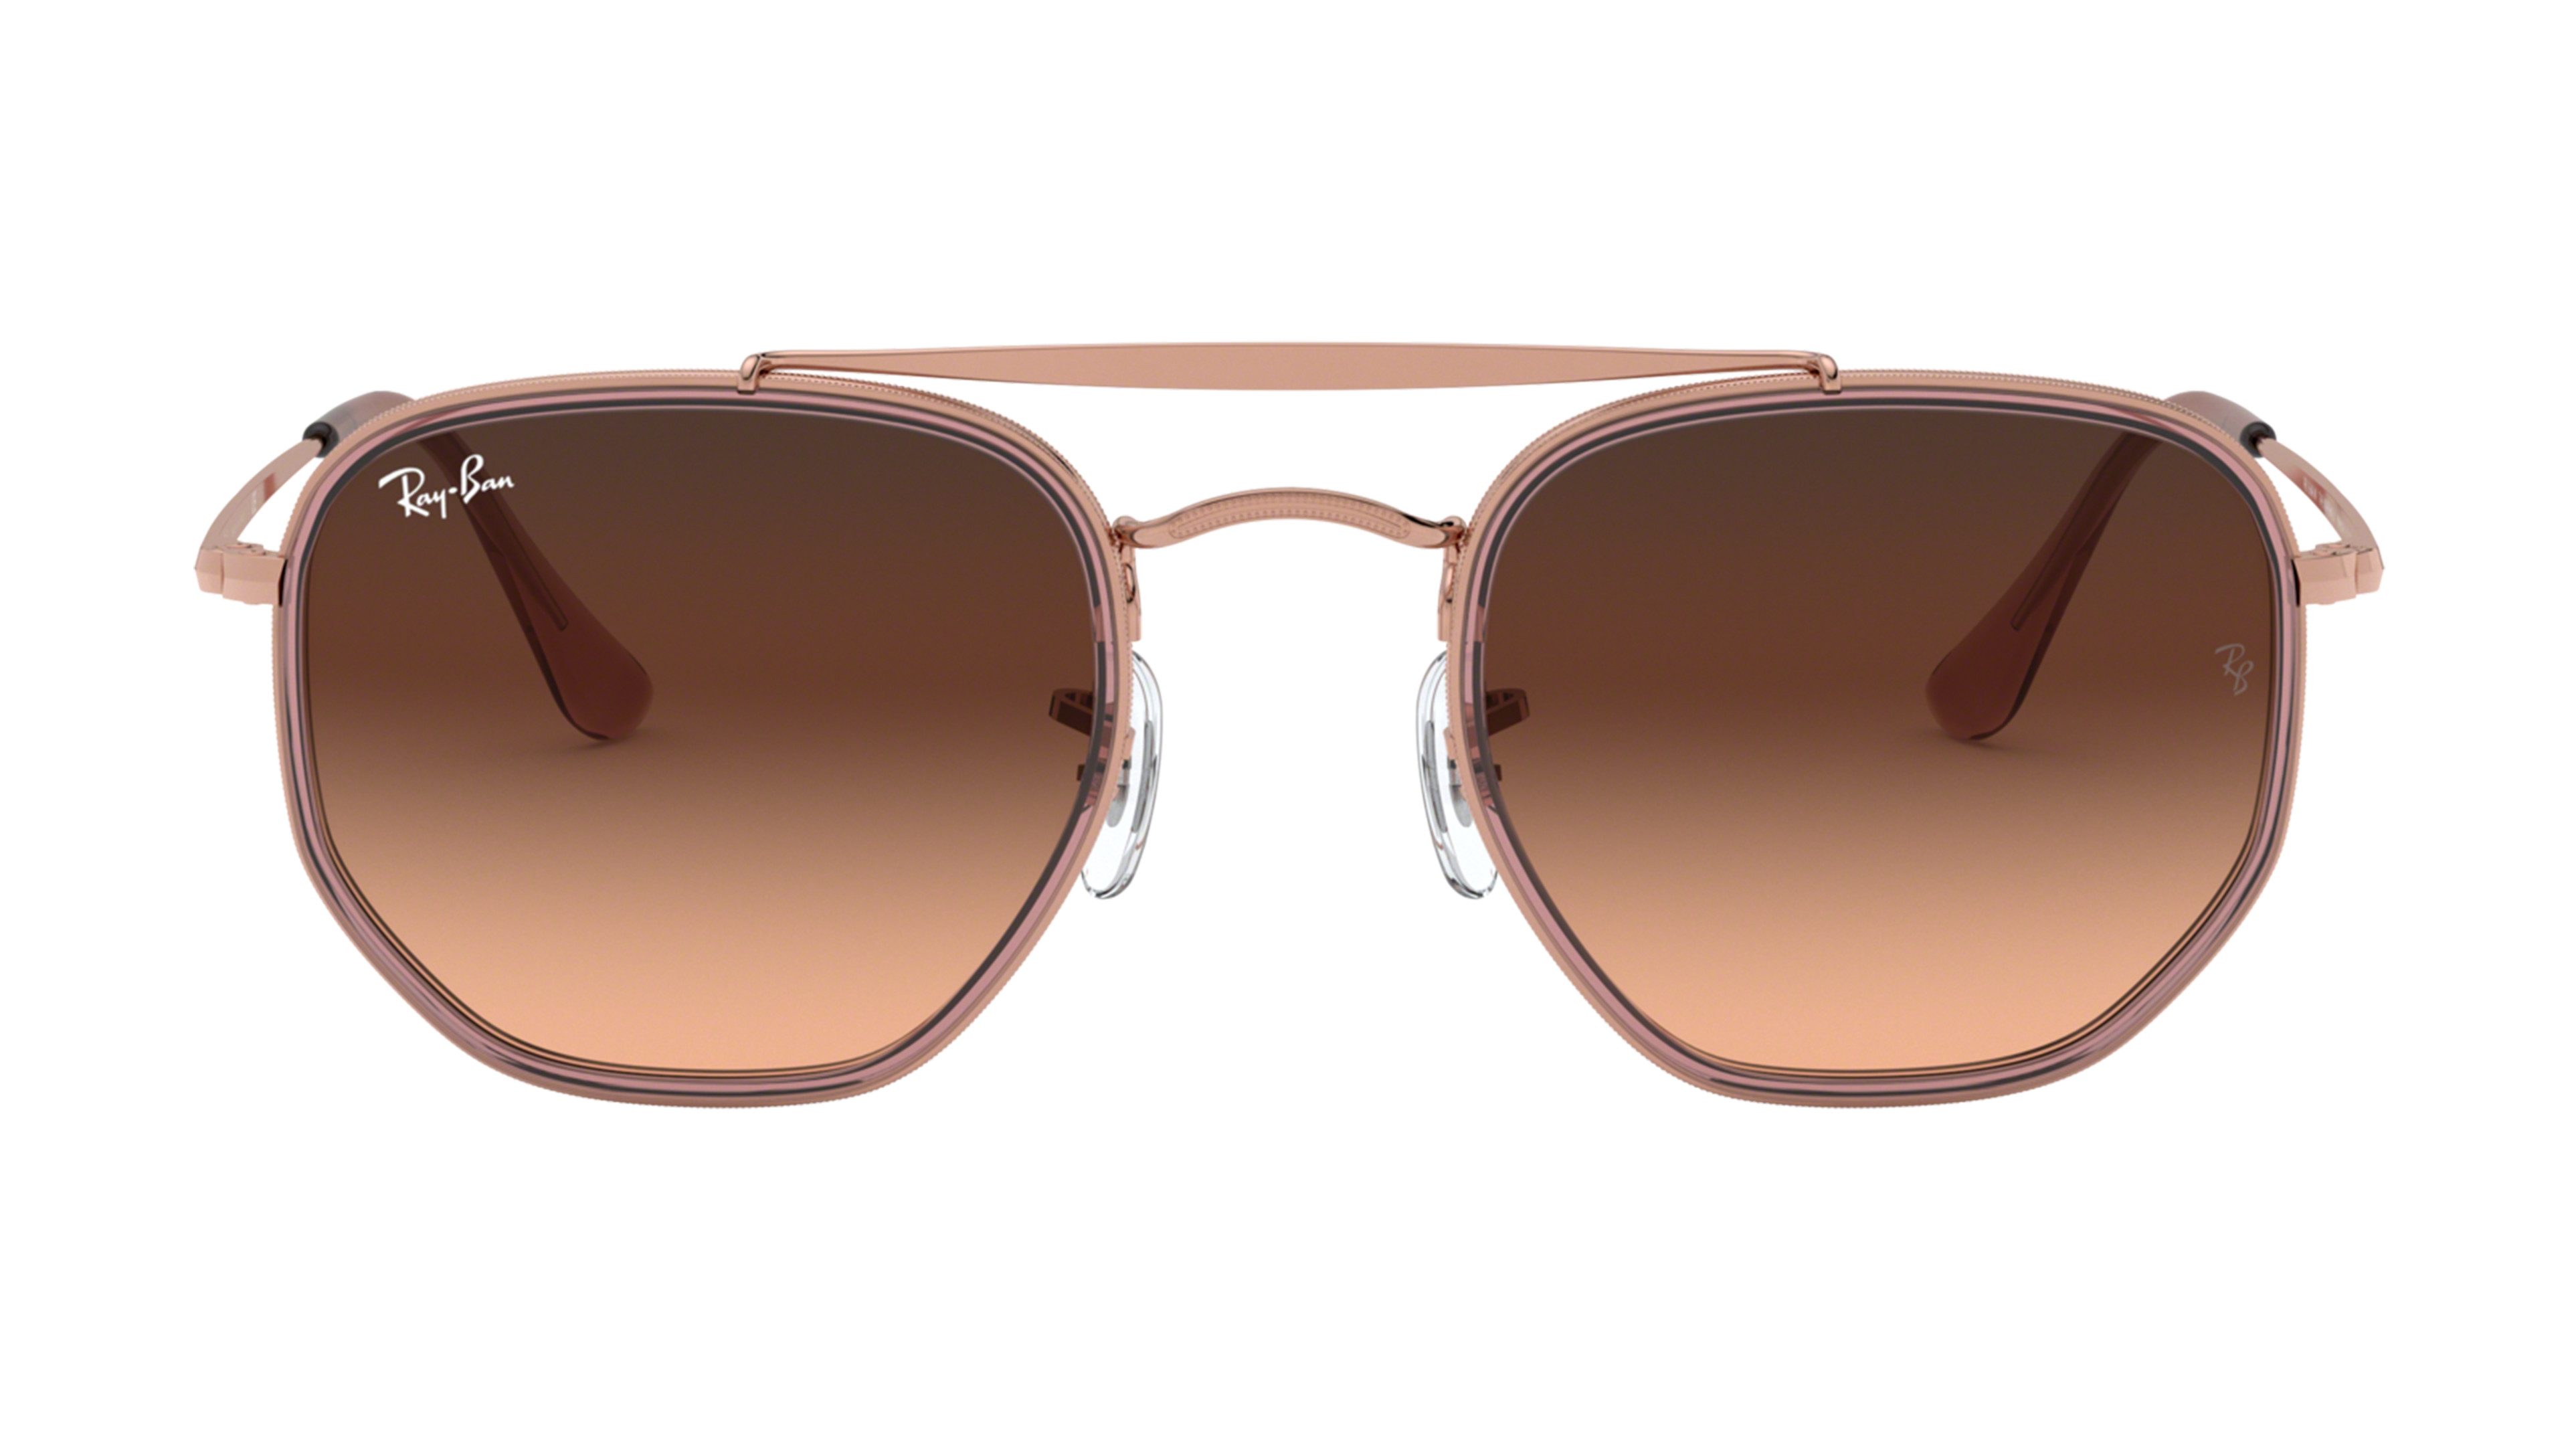 8056597073202-front-Ray-Ban-Sonnenbrille-0RB3648M-9069A5-The-Marshal-2